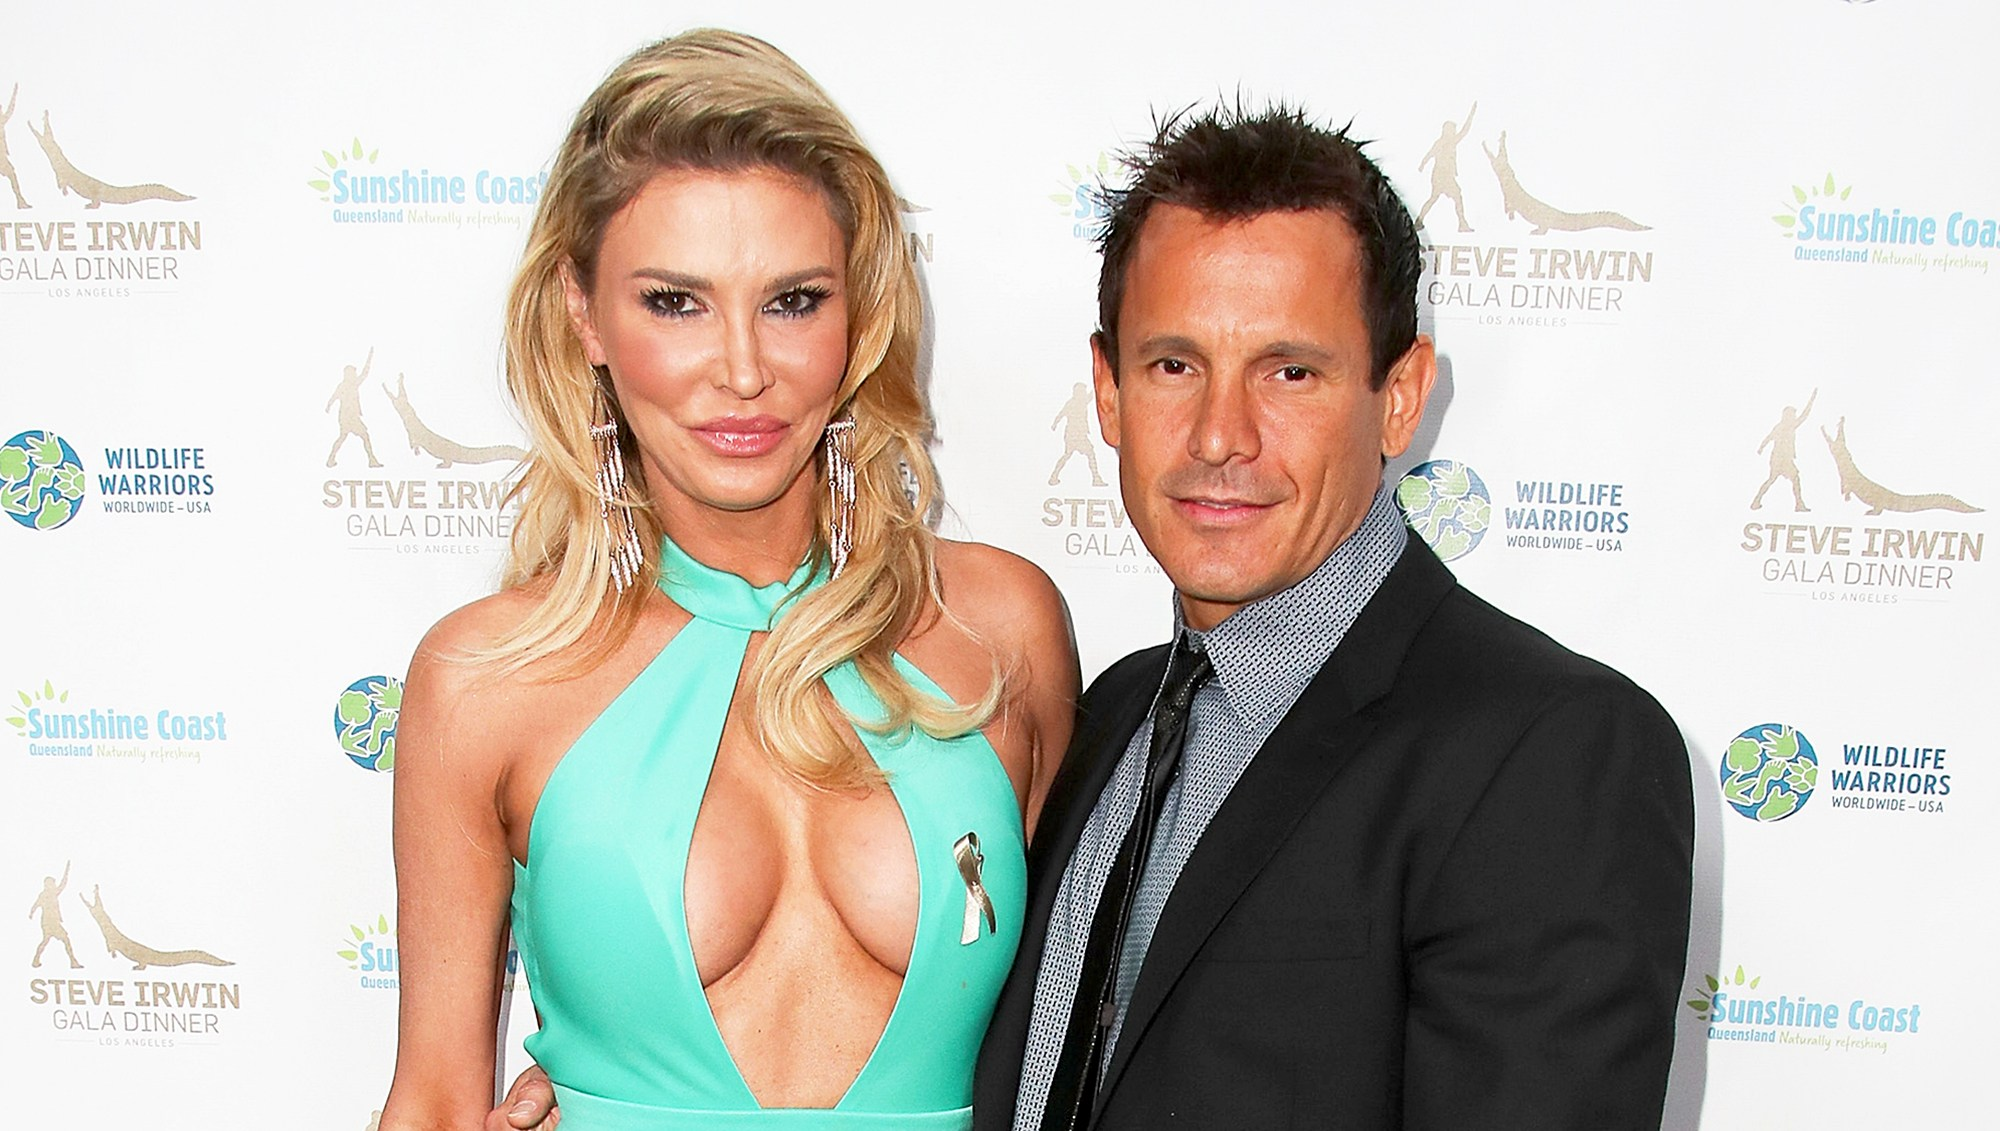 Brandi Glanville and Donald Friese attend the Steve Irwin Gala Dinner at the SLS Hotel at Beverly Hills on May 13, 2017 in Los Angeles, California.